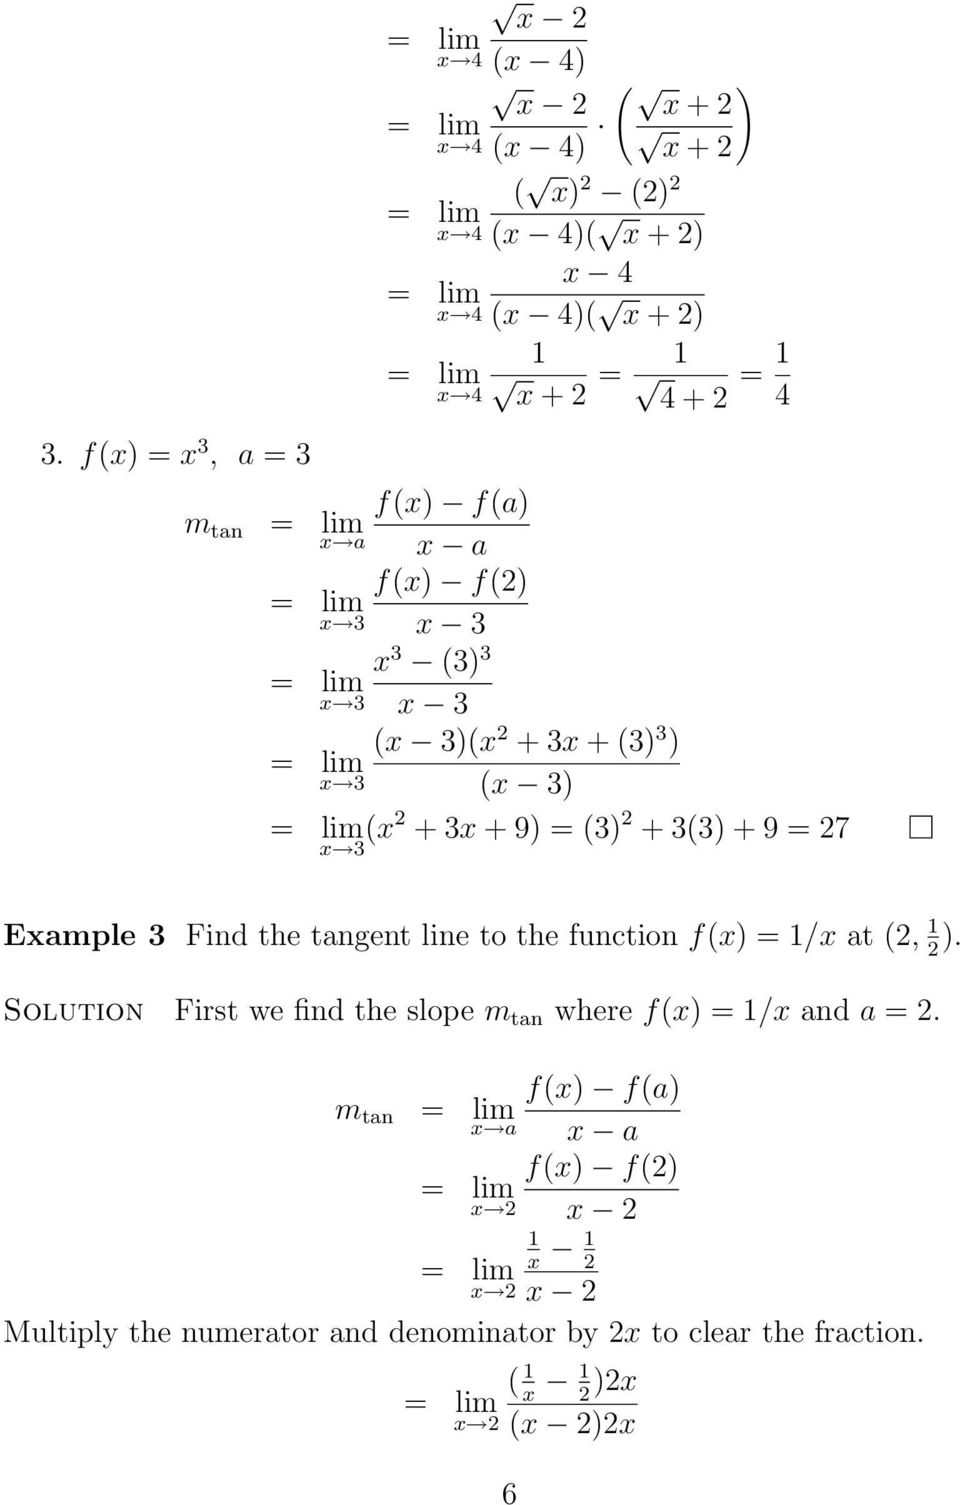 Find te tangent line to te function f(x) = 1/x at (2, 1 2 ). Solution First we find te slope m tan were f(x) = 1/x and a = 2.